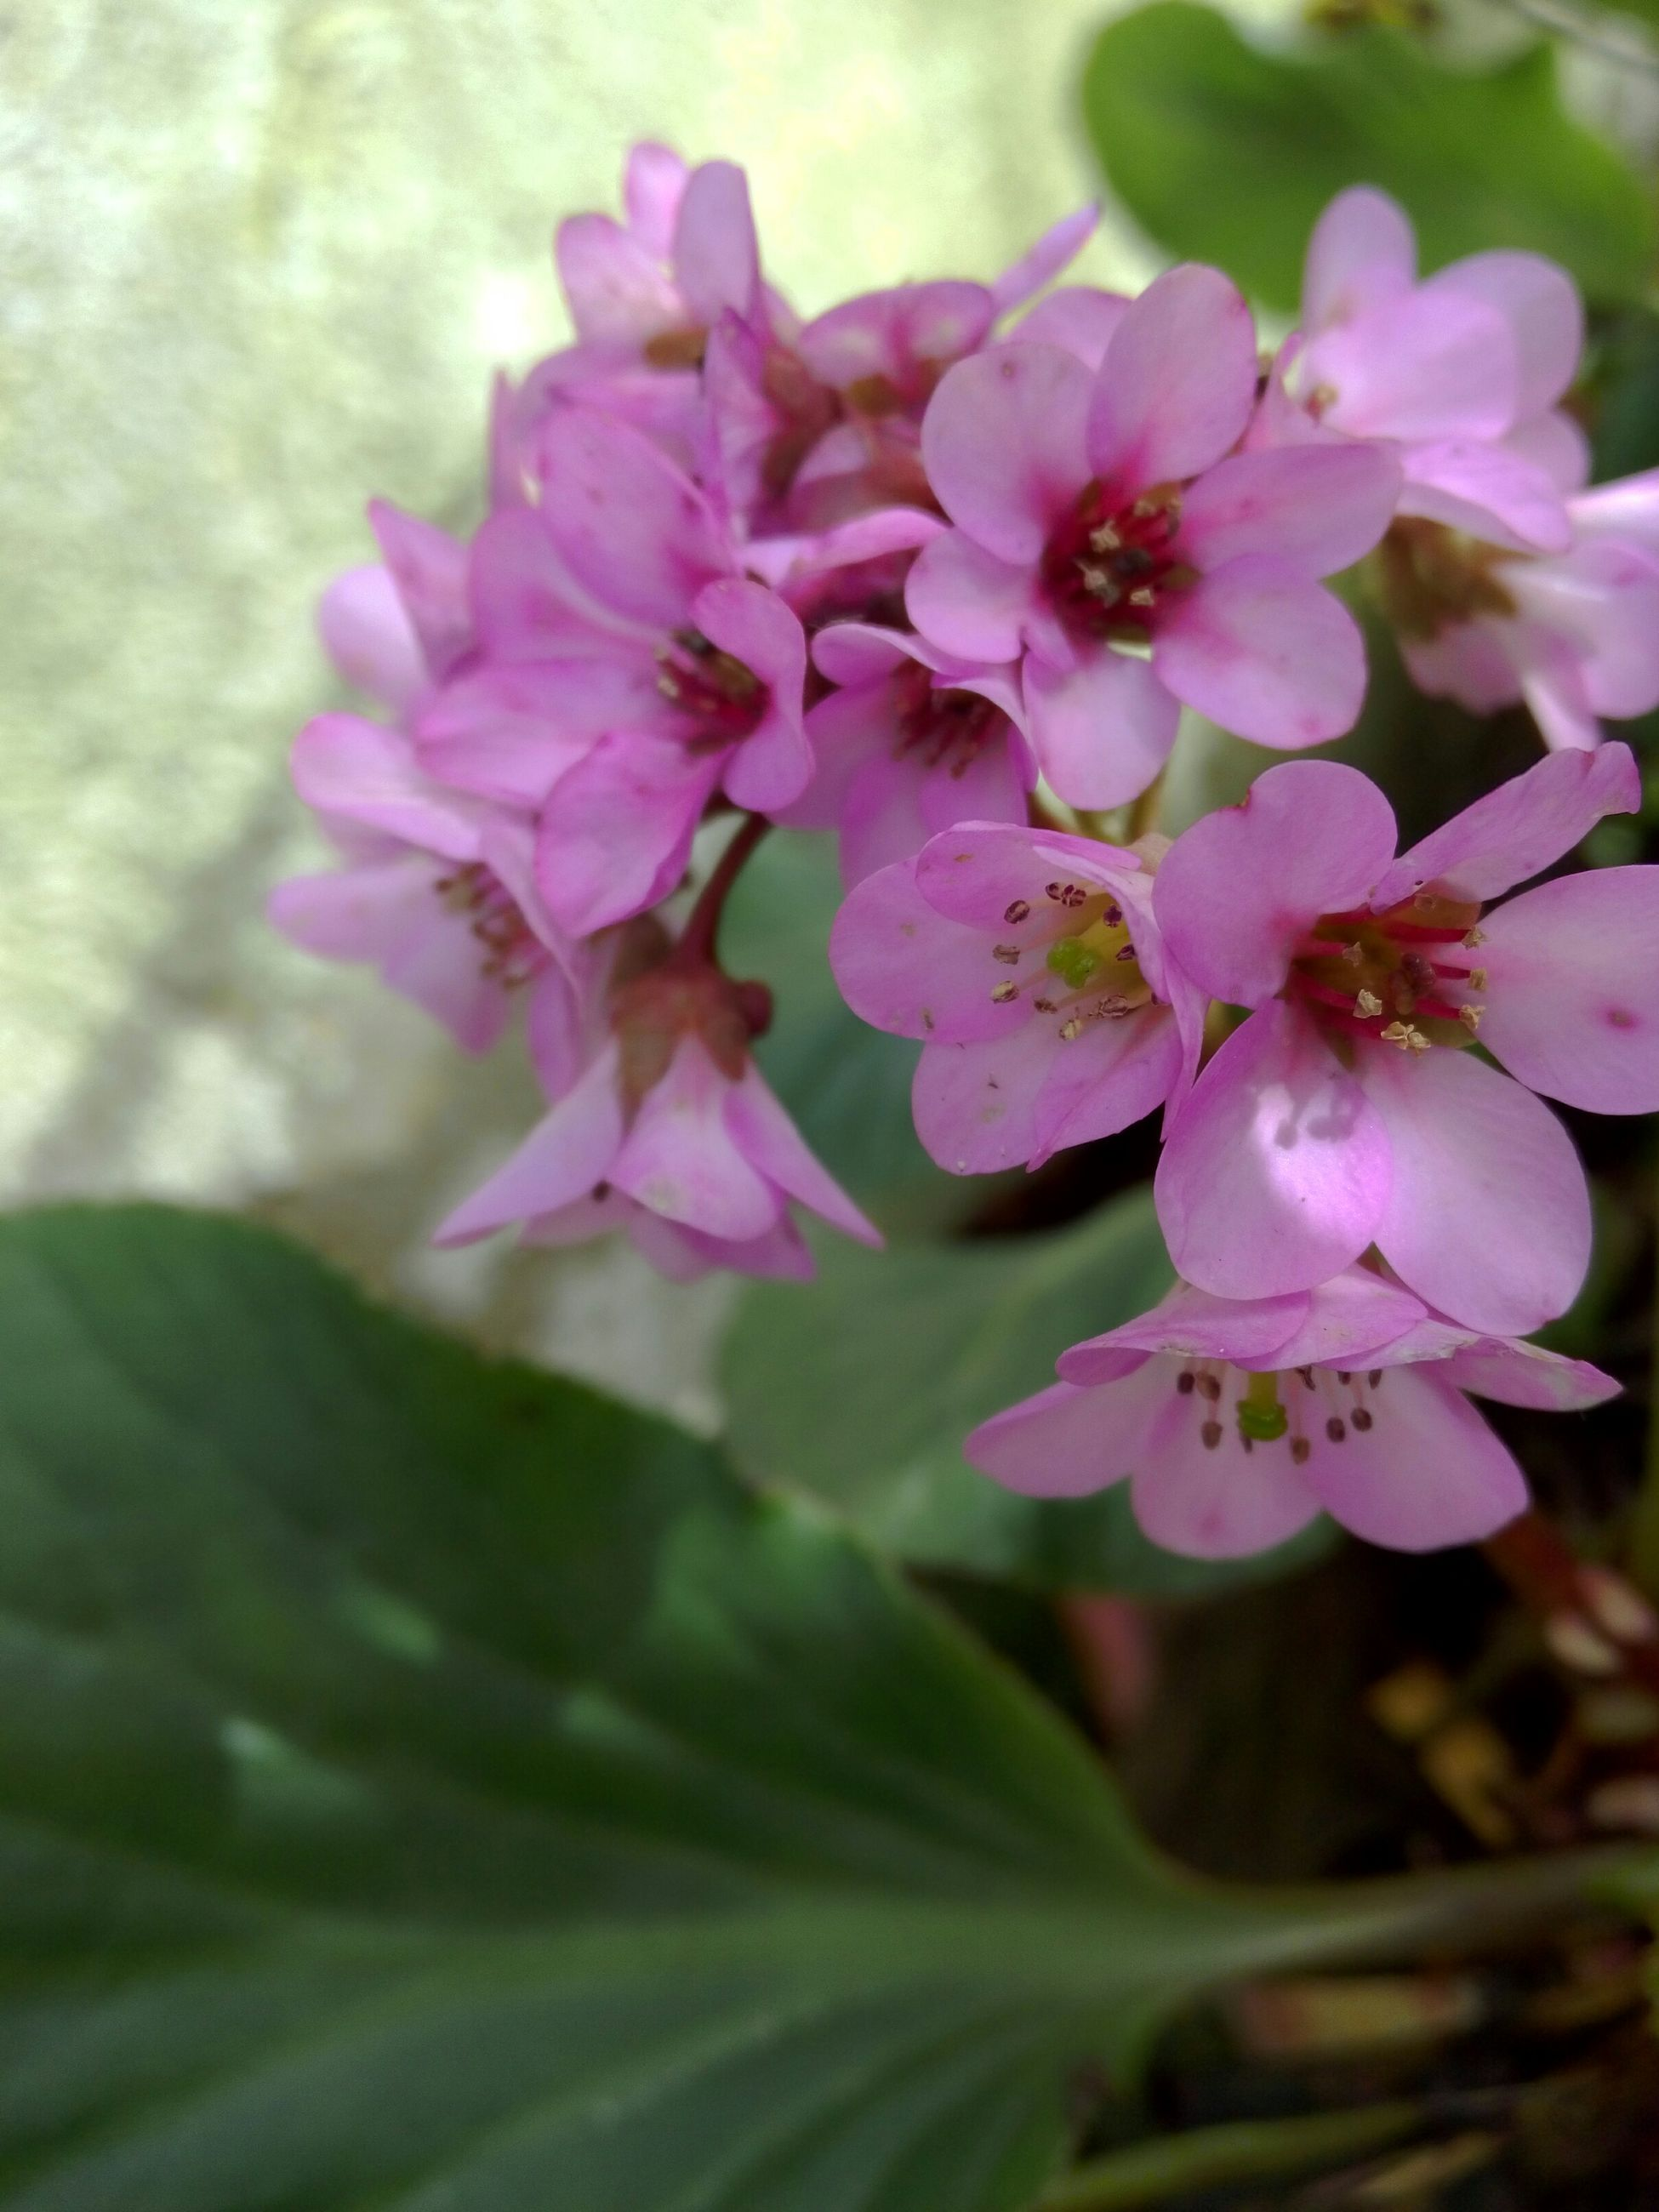 flower, freshness, petal, pink color, fragility, growth, beauty in nature, flower head, close-up, nature, blooming, focus on foreground, plant, pink, in bloom, leaf, blossom, day, outdoors, no people